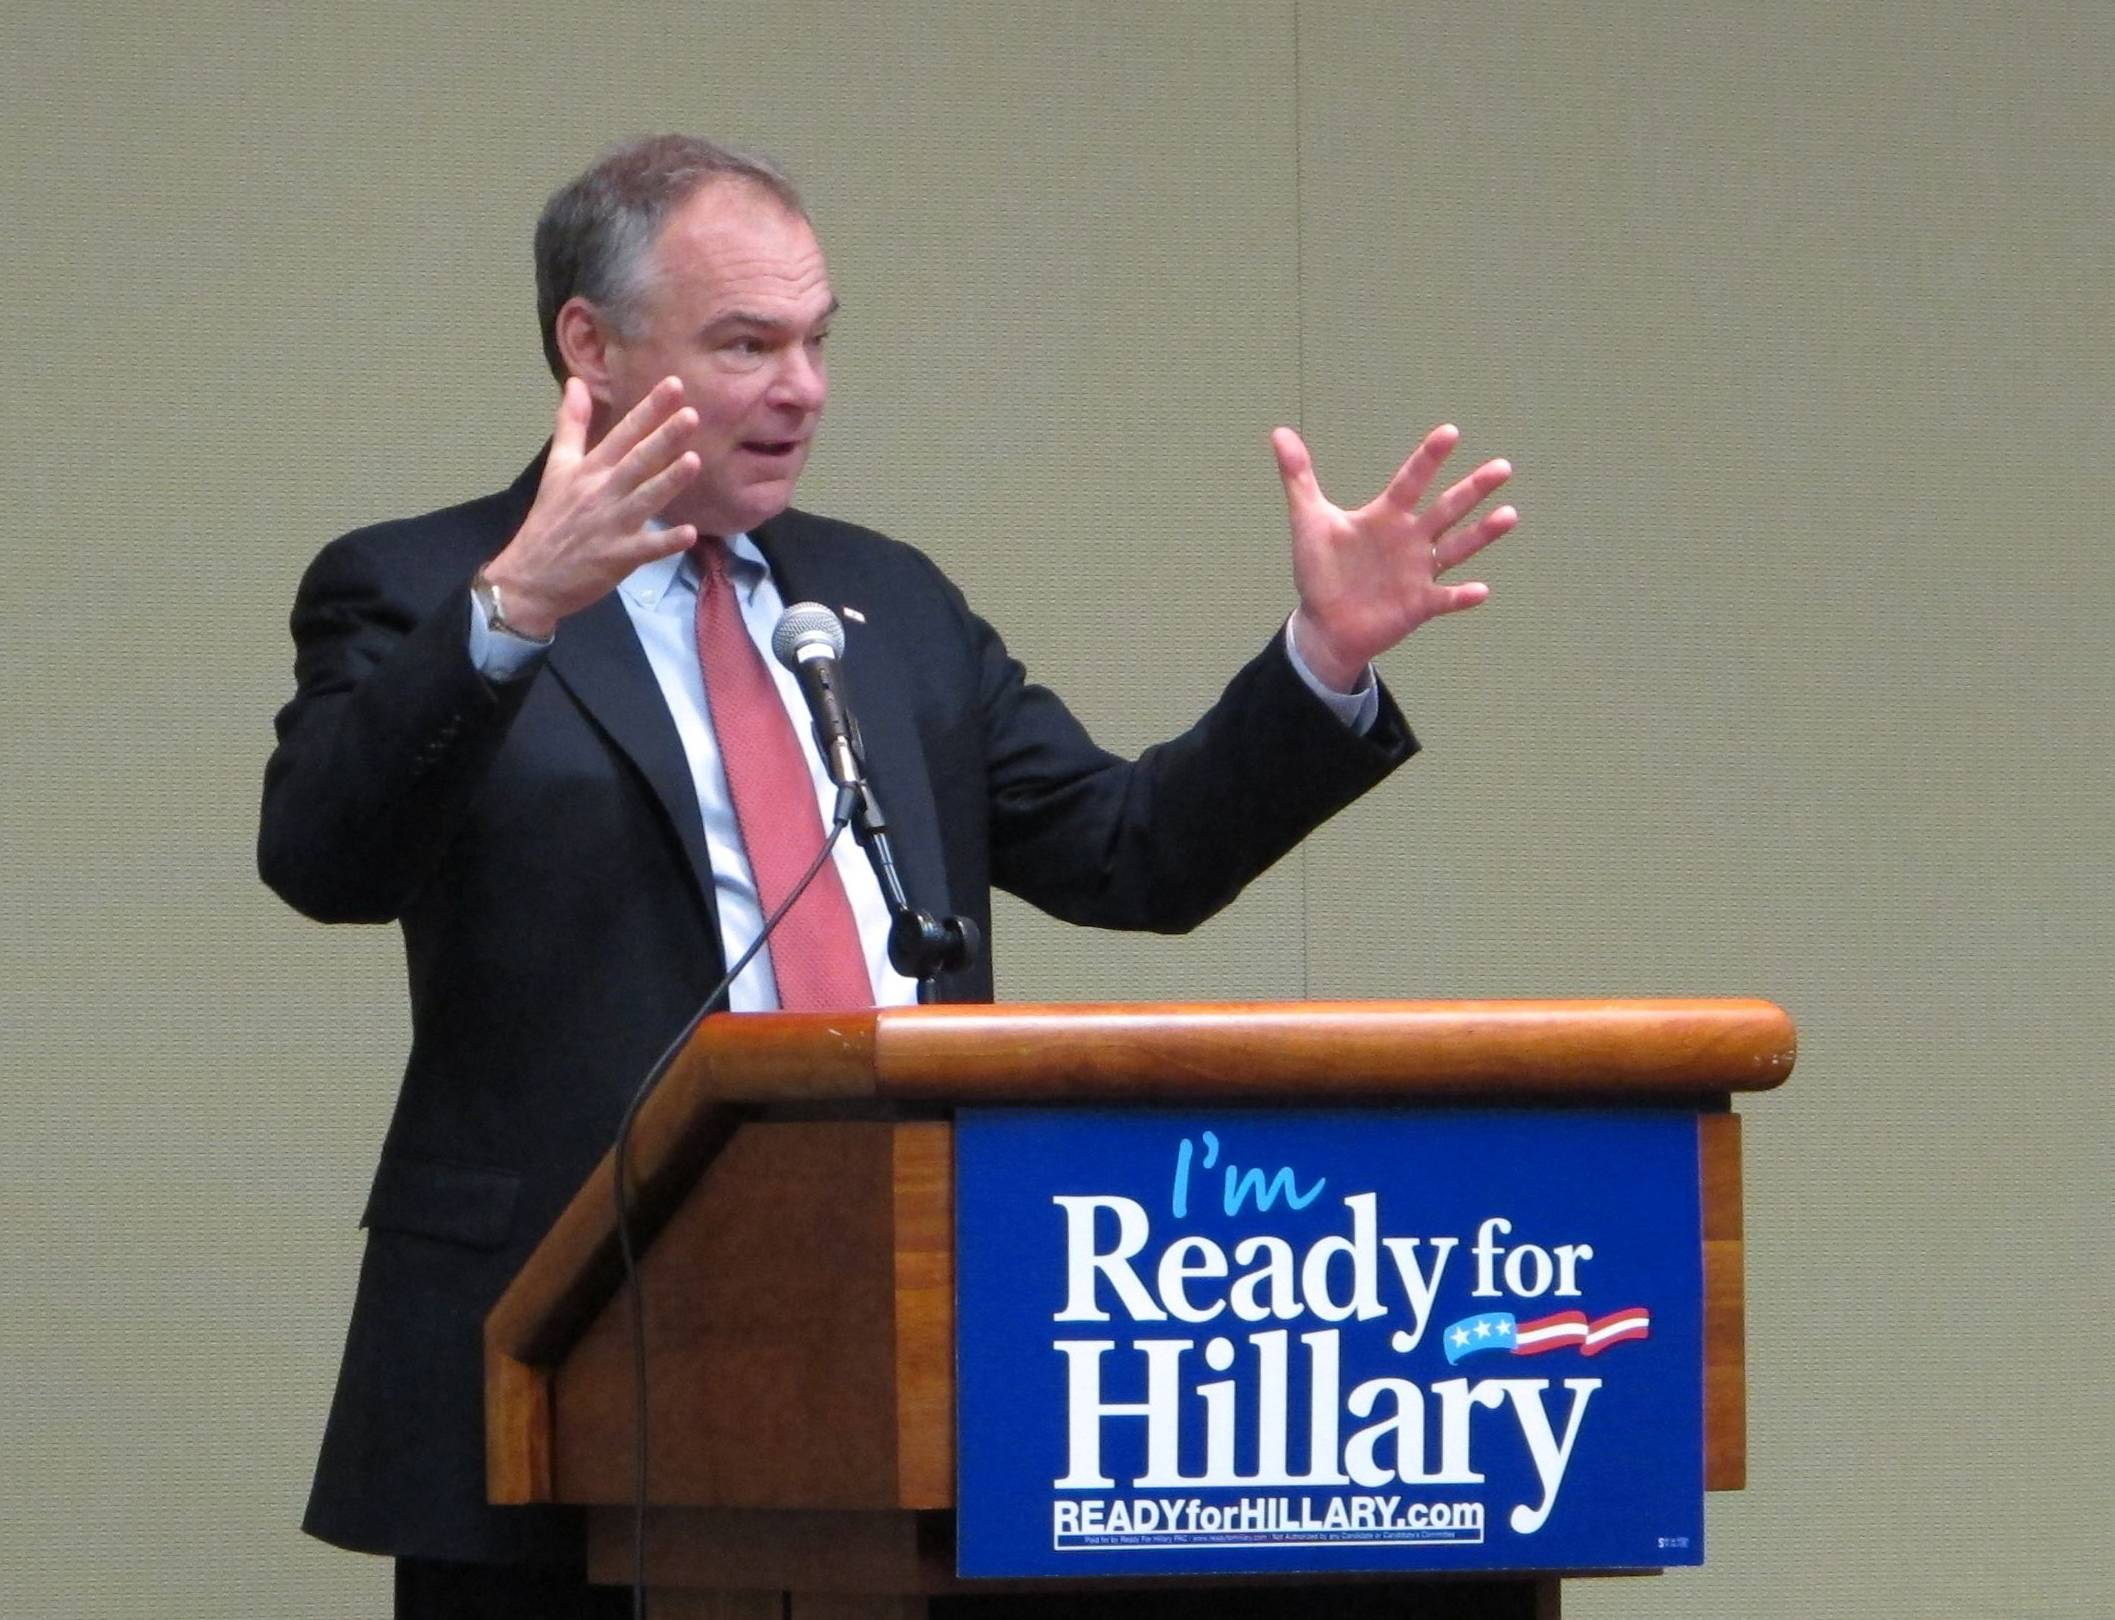 U.S. Sen. Tim Kaine gives a speech Saturday supporting former Secretary of State Hillary Clinton if she decides to run for president.